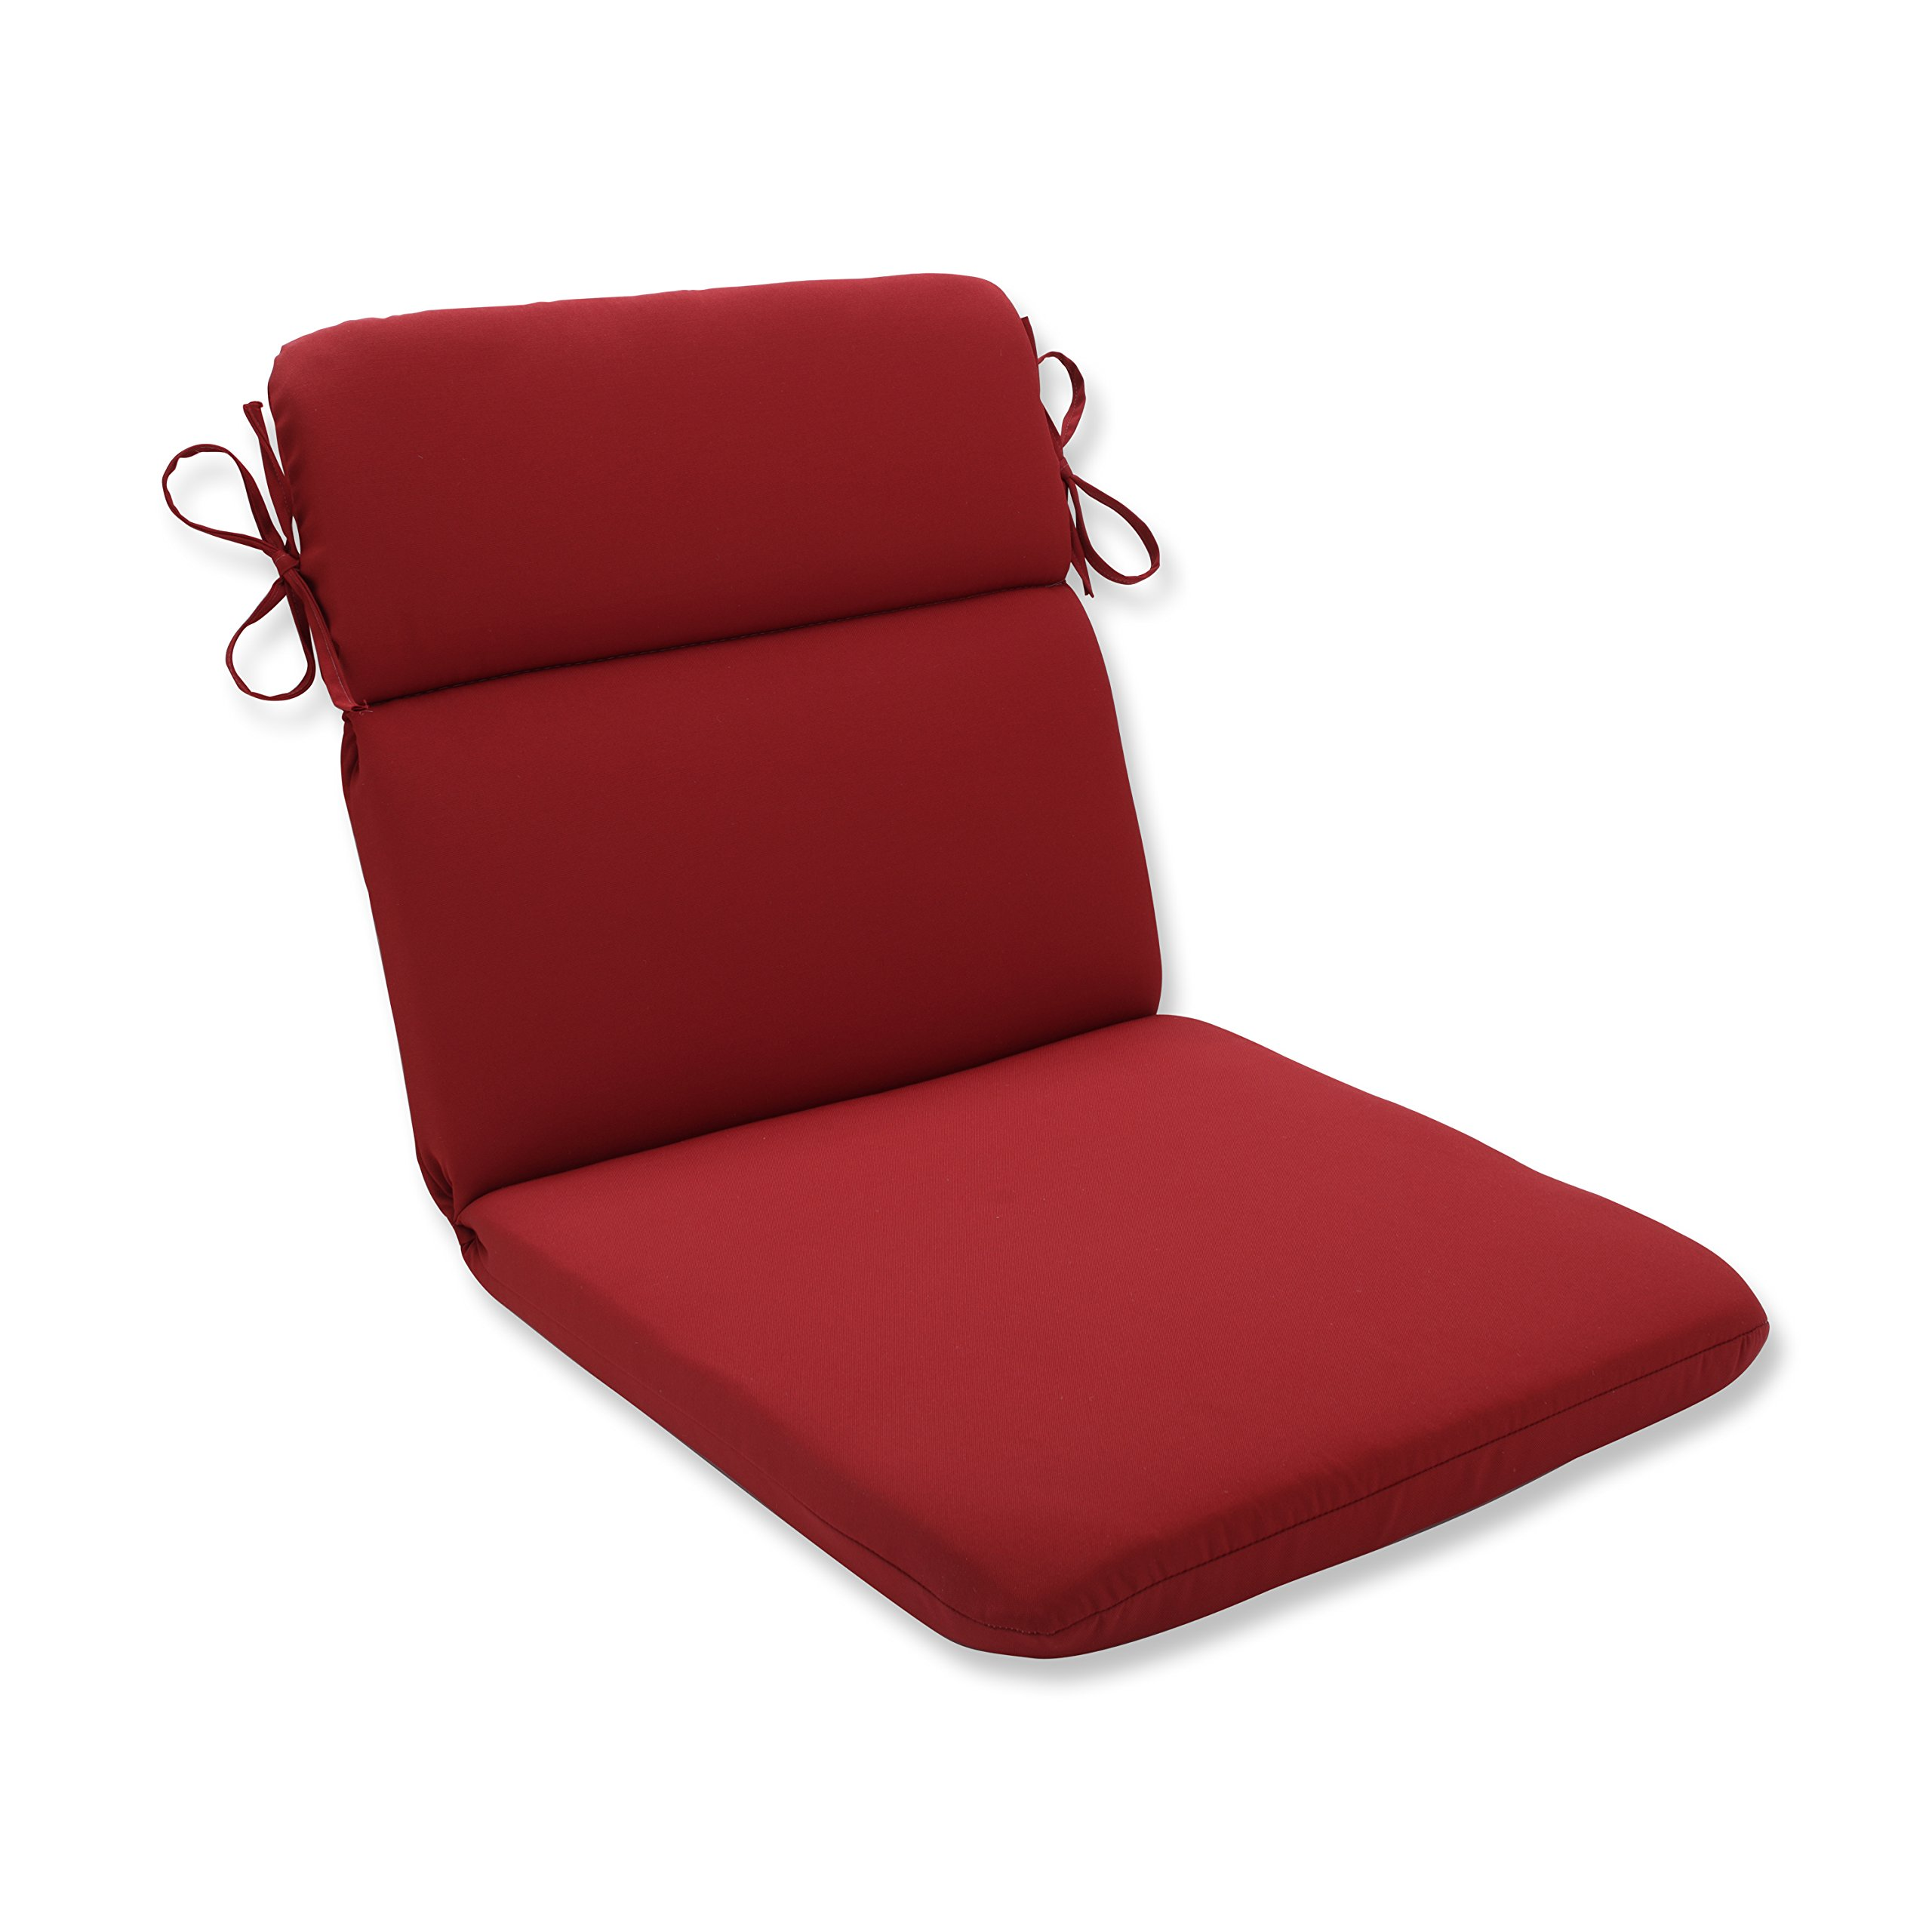 Pillow Perfect Indoor/Outdoor Red Solid Chair